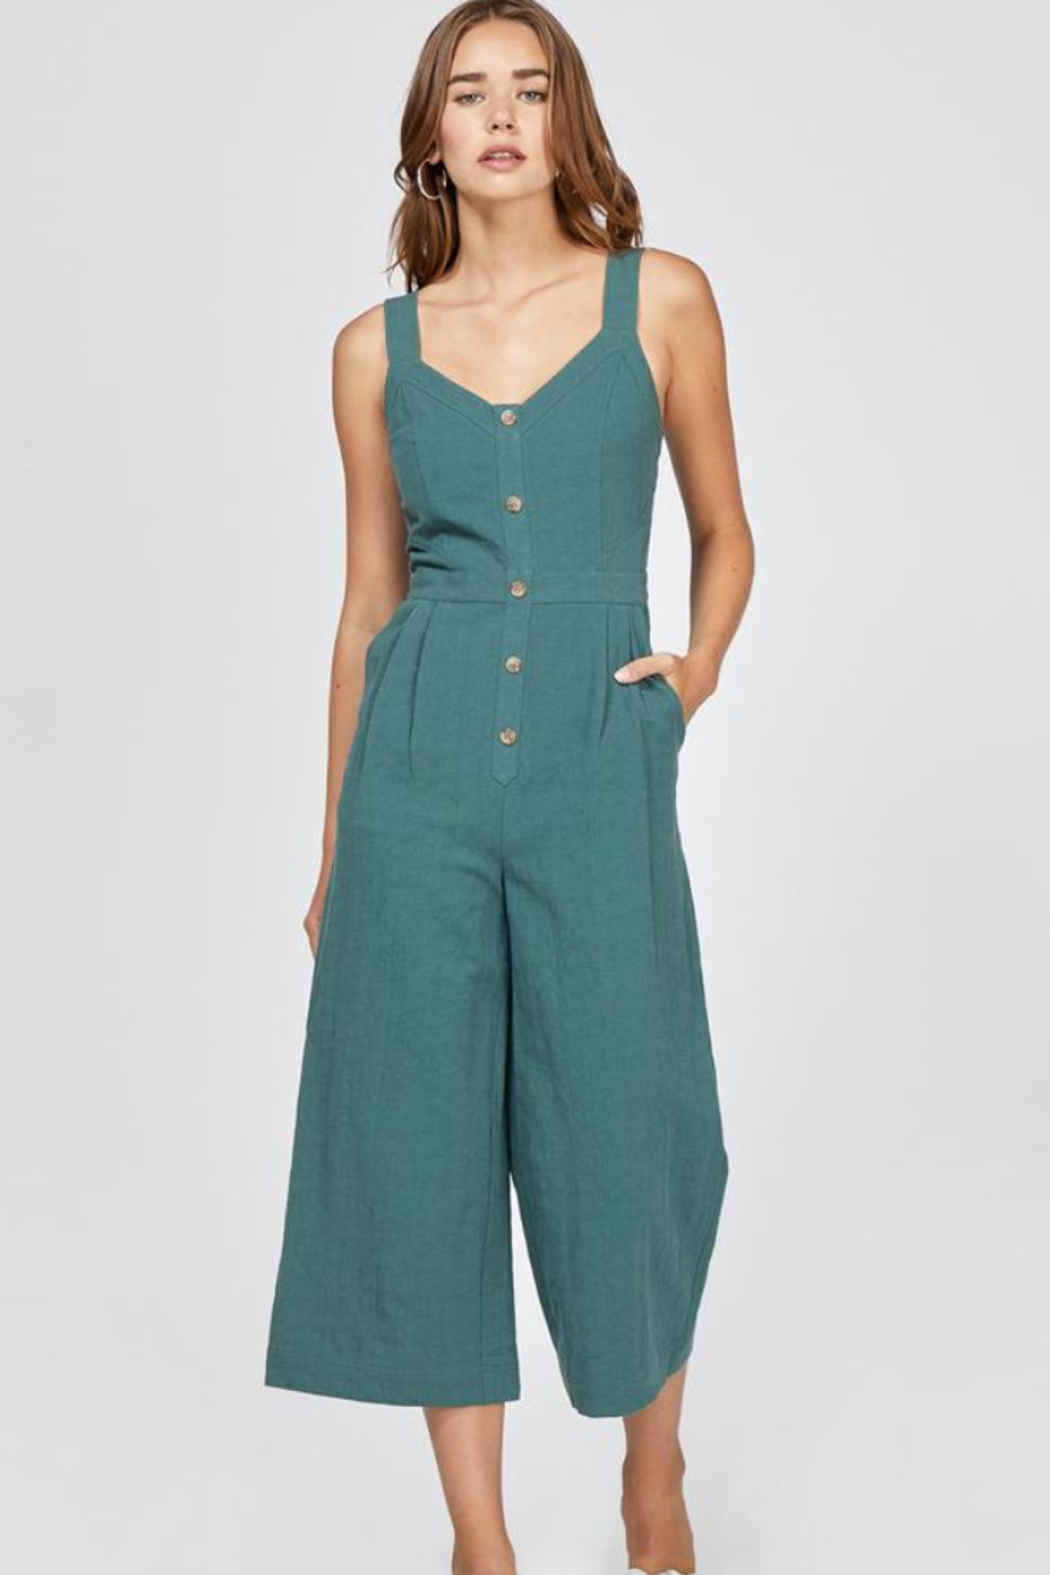 Greylin Lenox Button-Up Culotte Jumpsuit - Main Image